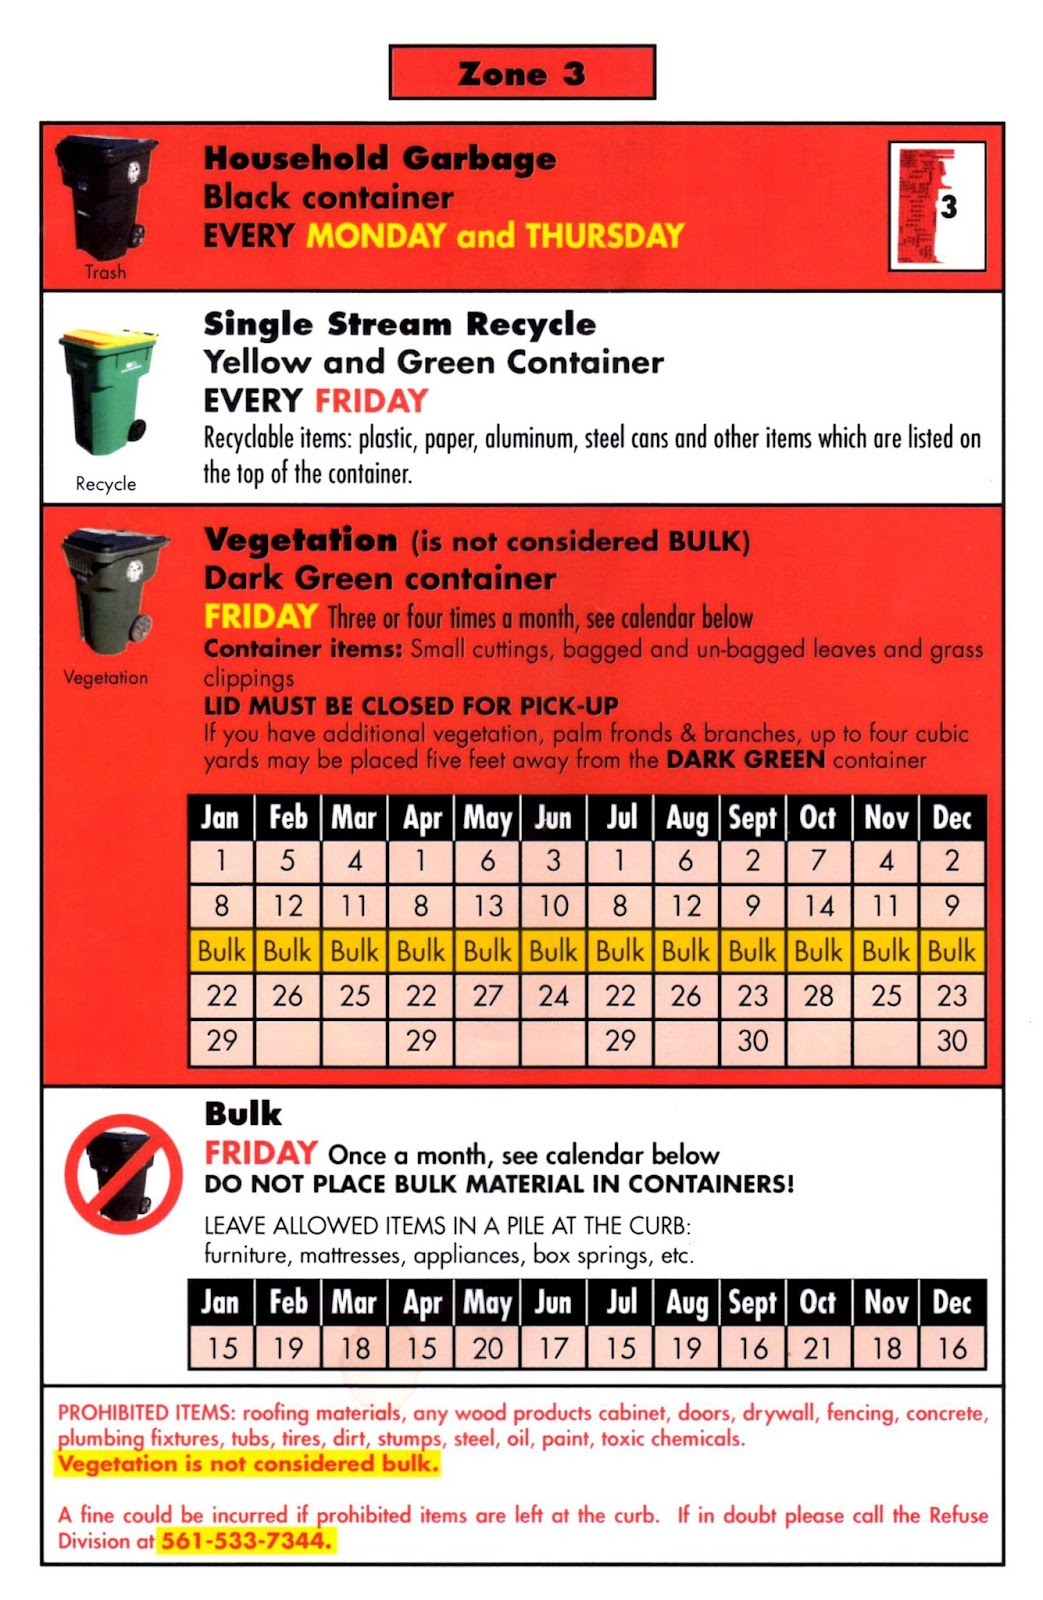 For More Information On Schedules Recycling Refuse Pickup Etc. Use This  Link To The Cityu0027s Public Services Dept. Sc 1 St Wes Blackmanu0027s  City Of Lake ...